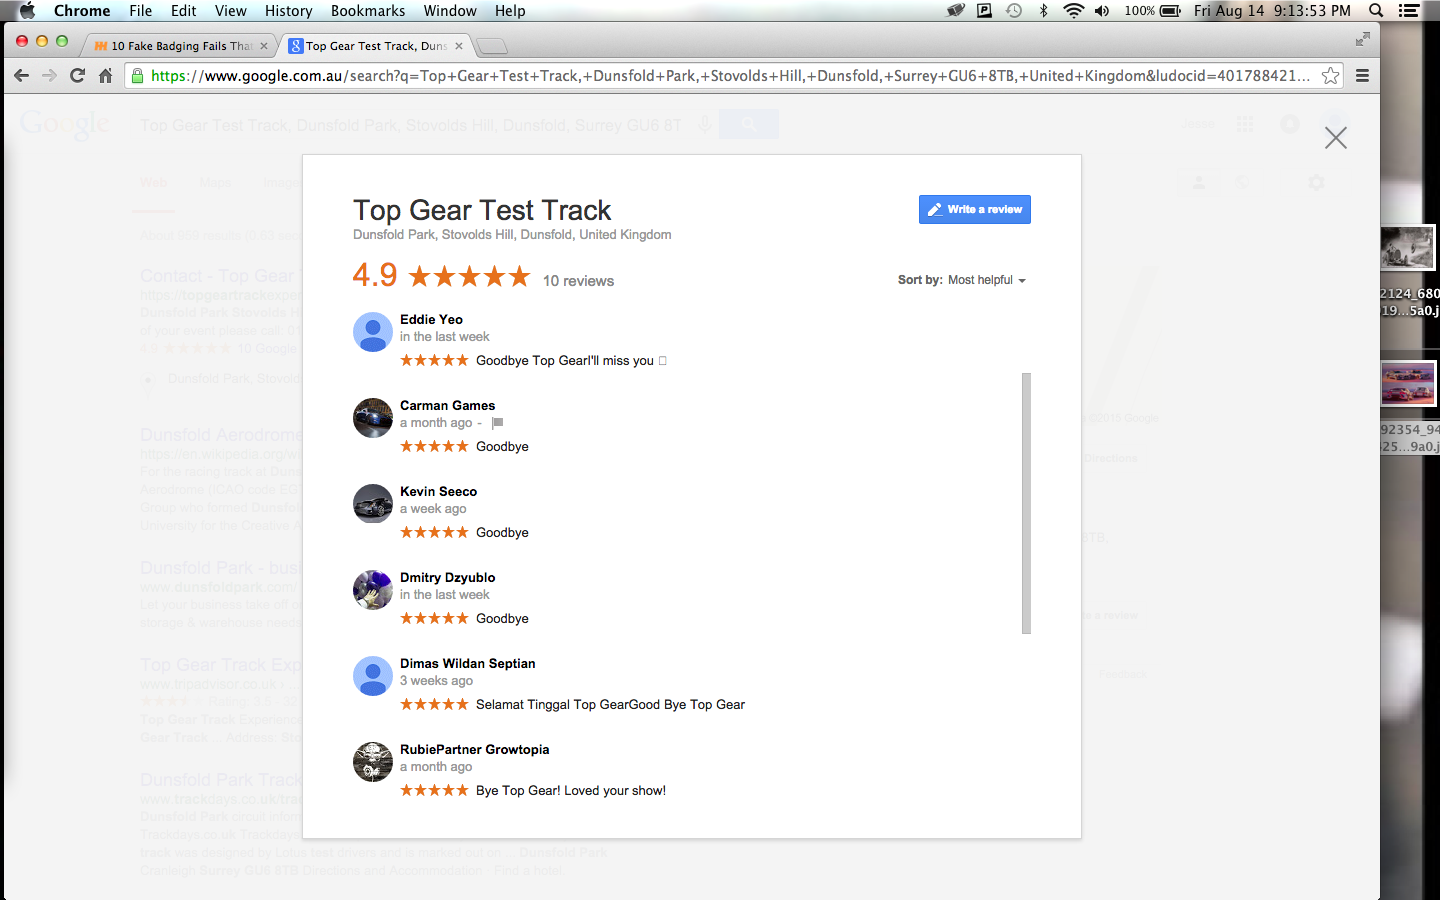 I just looked up Top Gear Test Track on google maps and